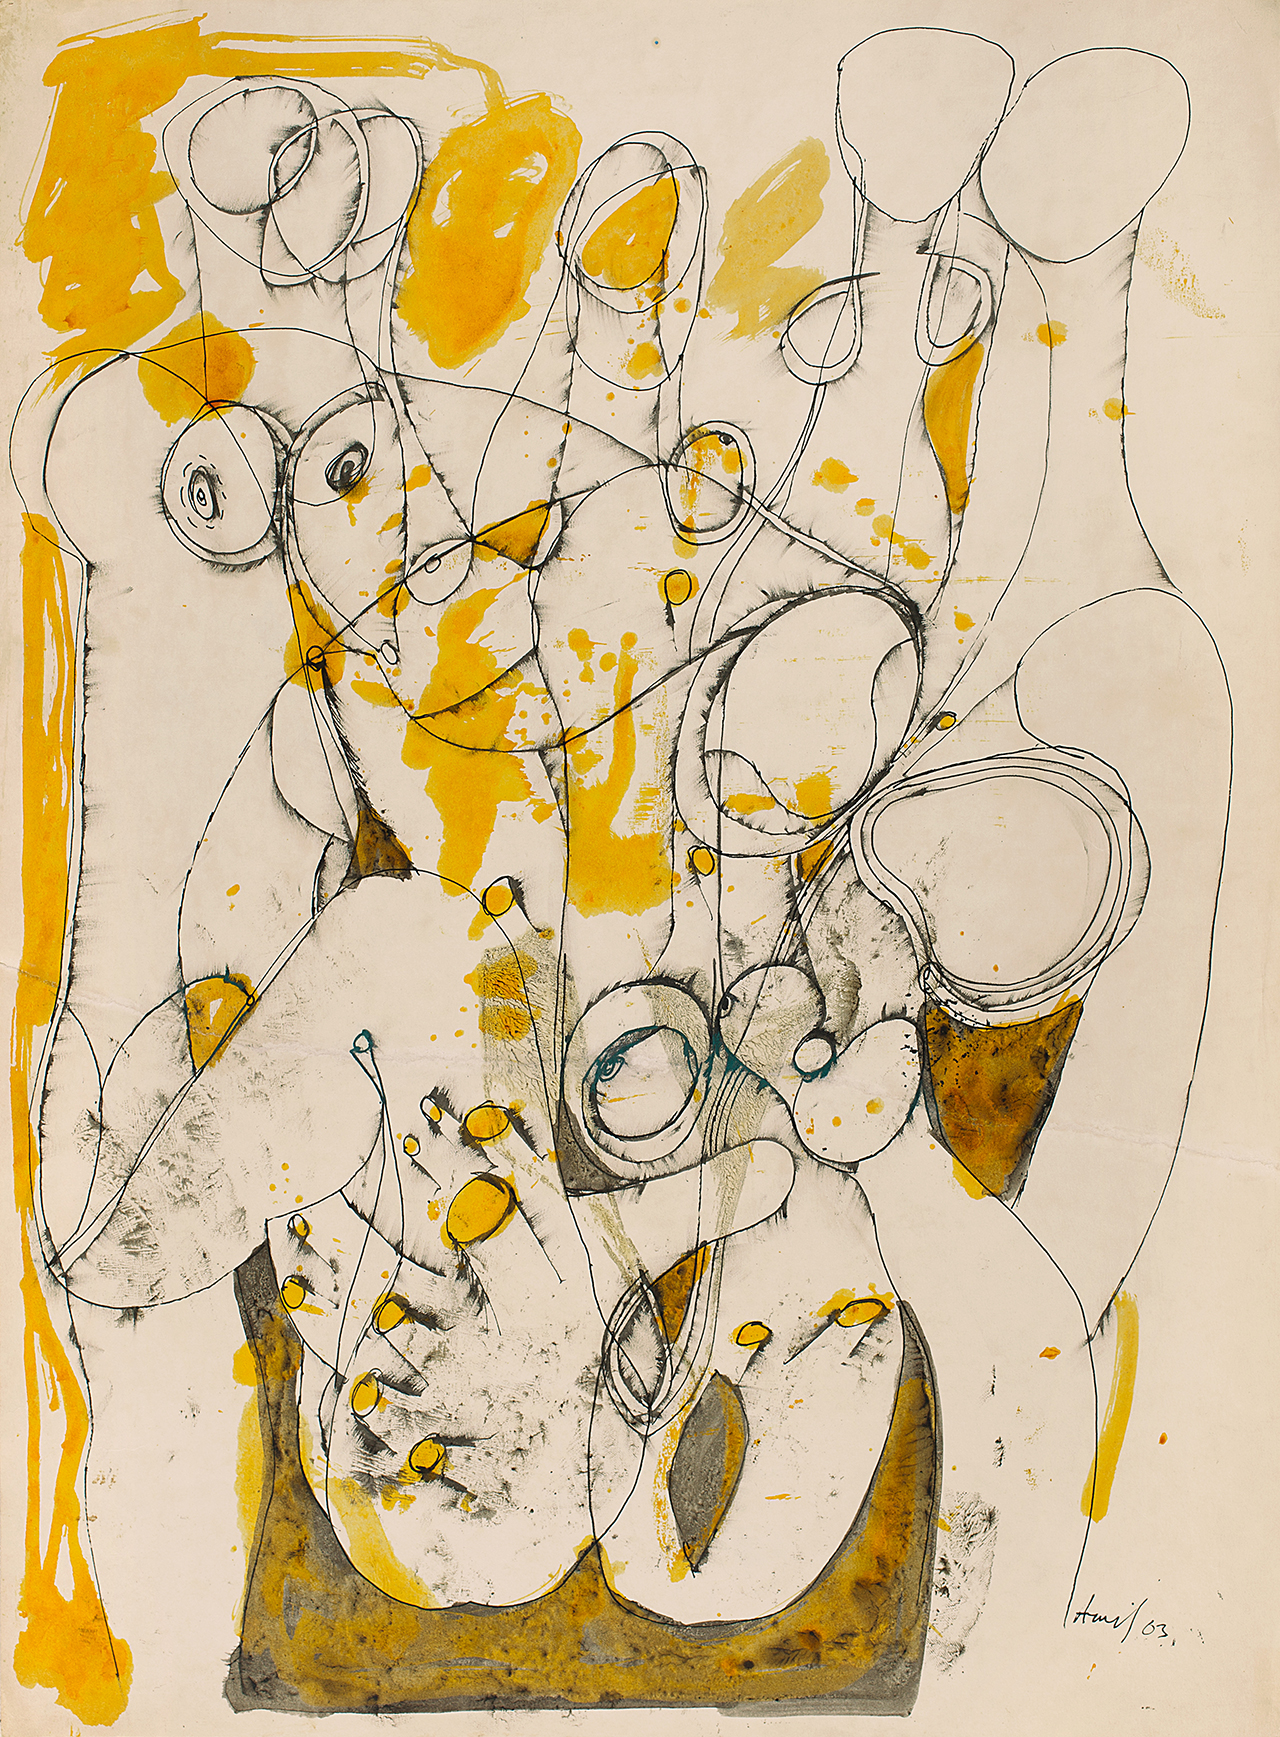 """Avinash Chandra, """"Untitled"""" (1963), waterproof ink and pen and ink on paper pasted on paper, 29.7 x 21.5 inches (click to enlarge)"""